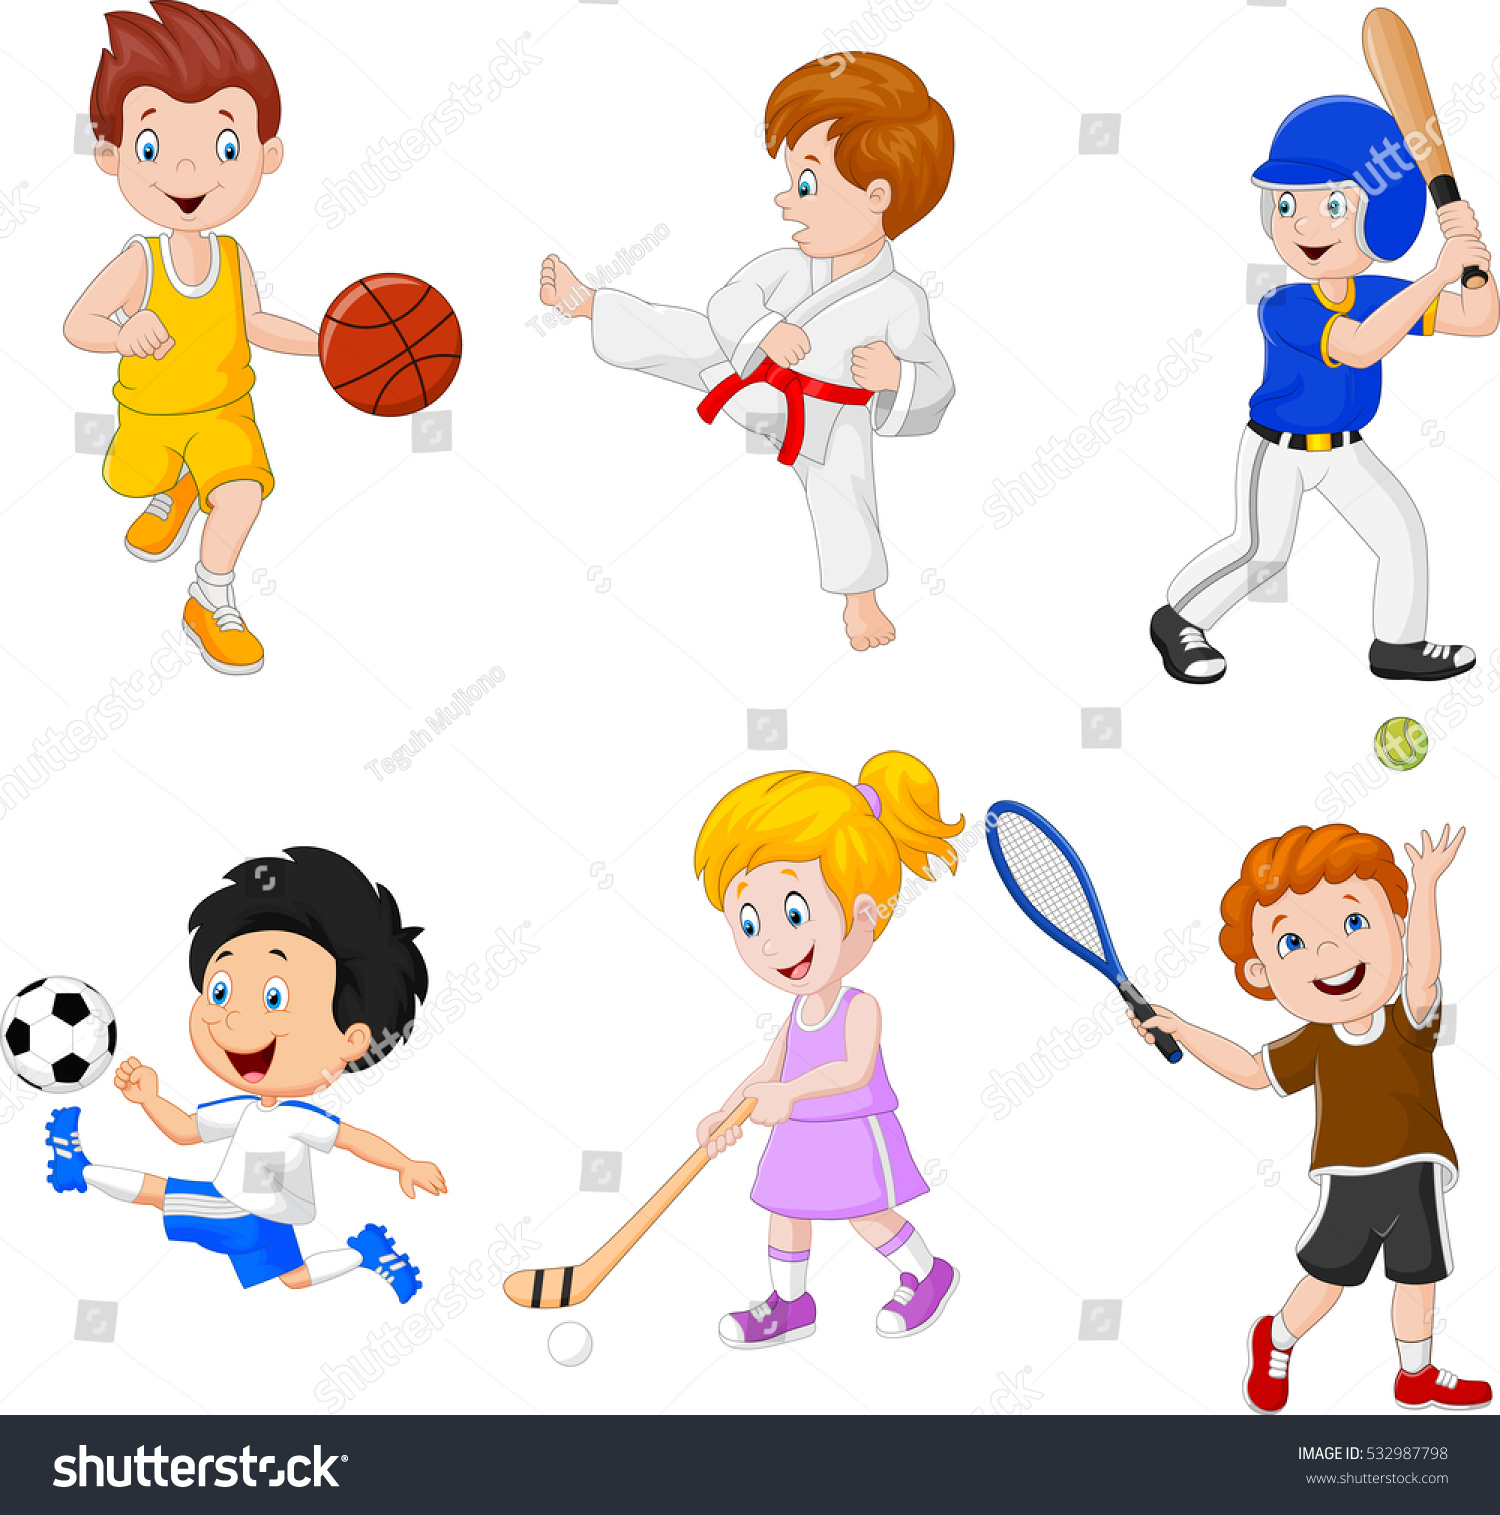 hobbies for kids. kids engaged in different hobbies for s